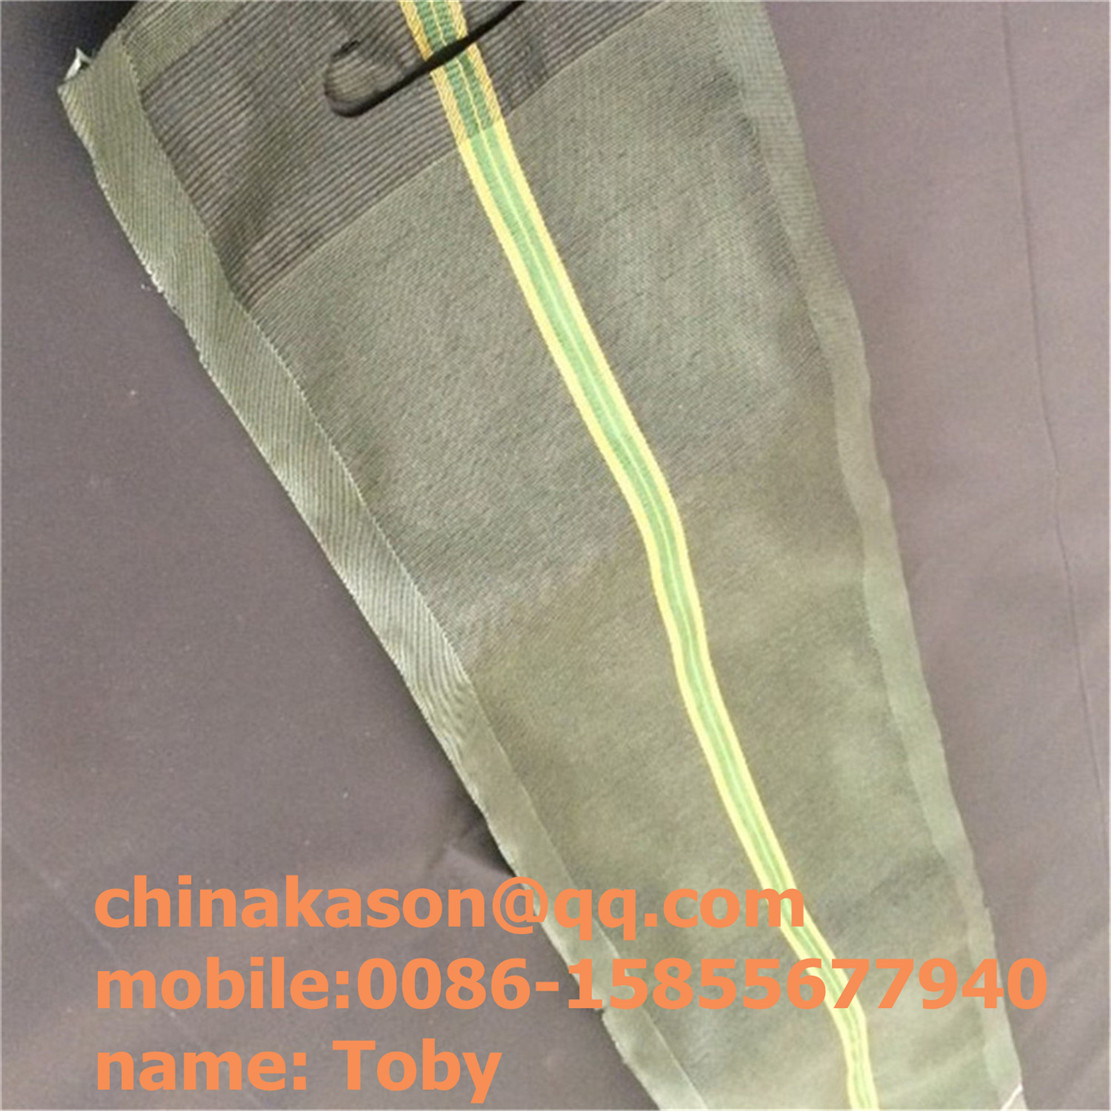 hdpe net gravel bag for silo bag supplier